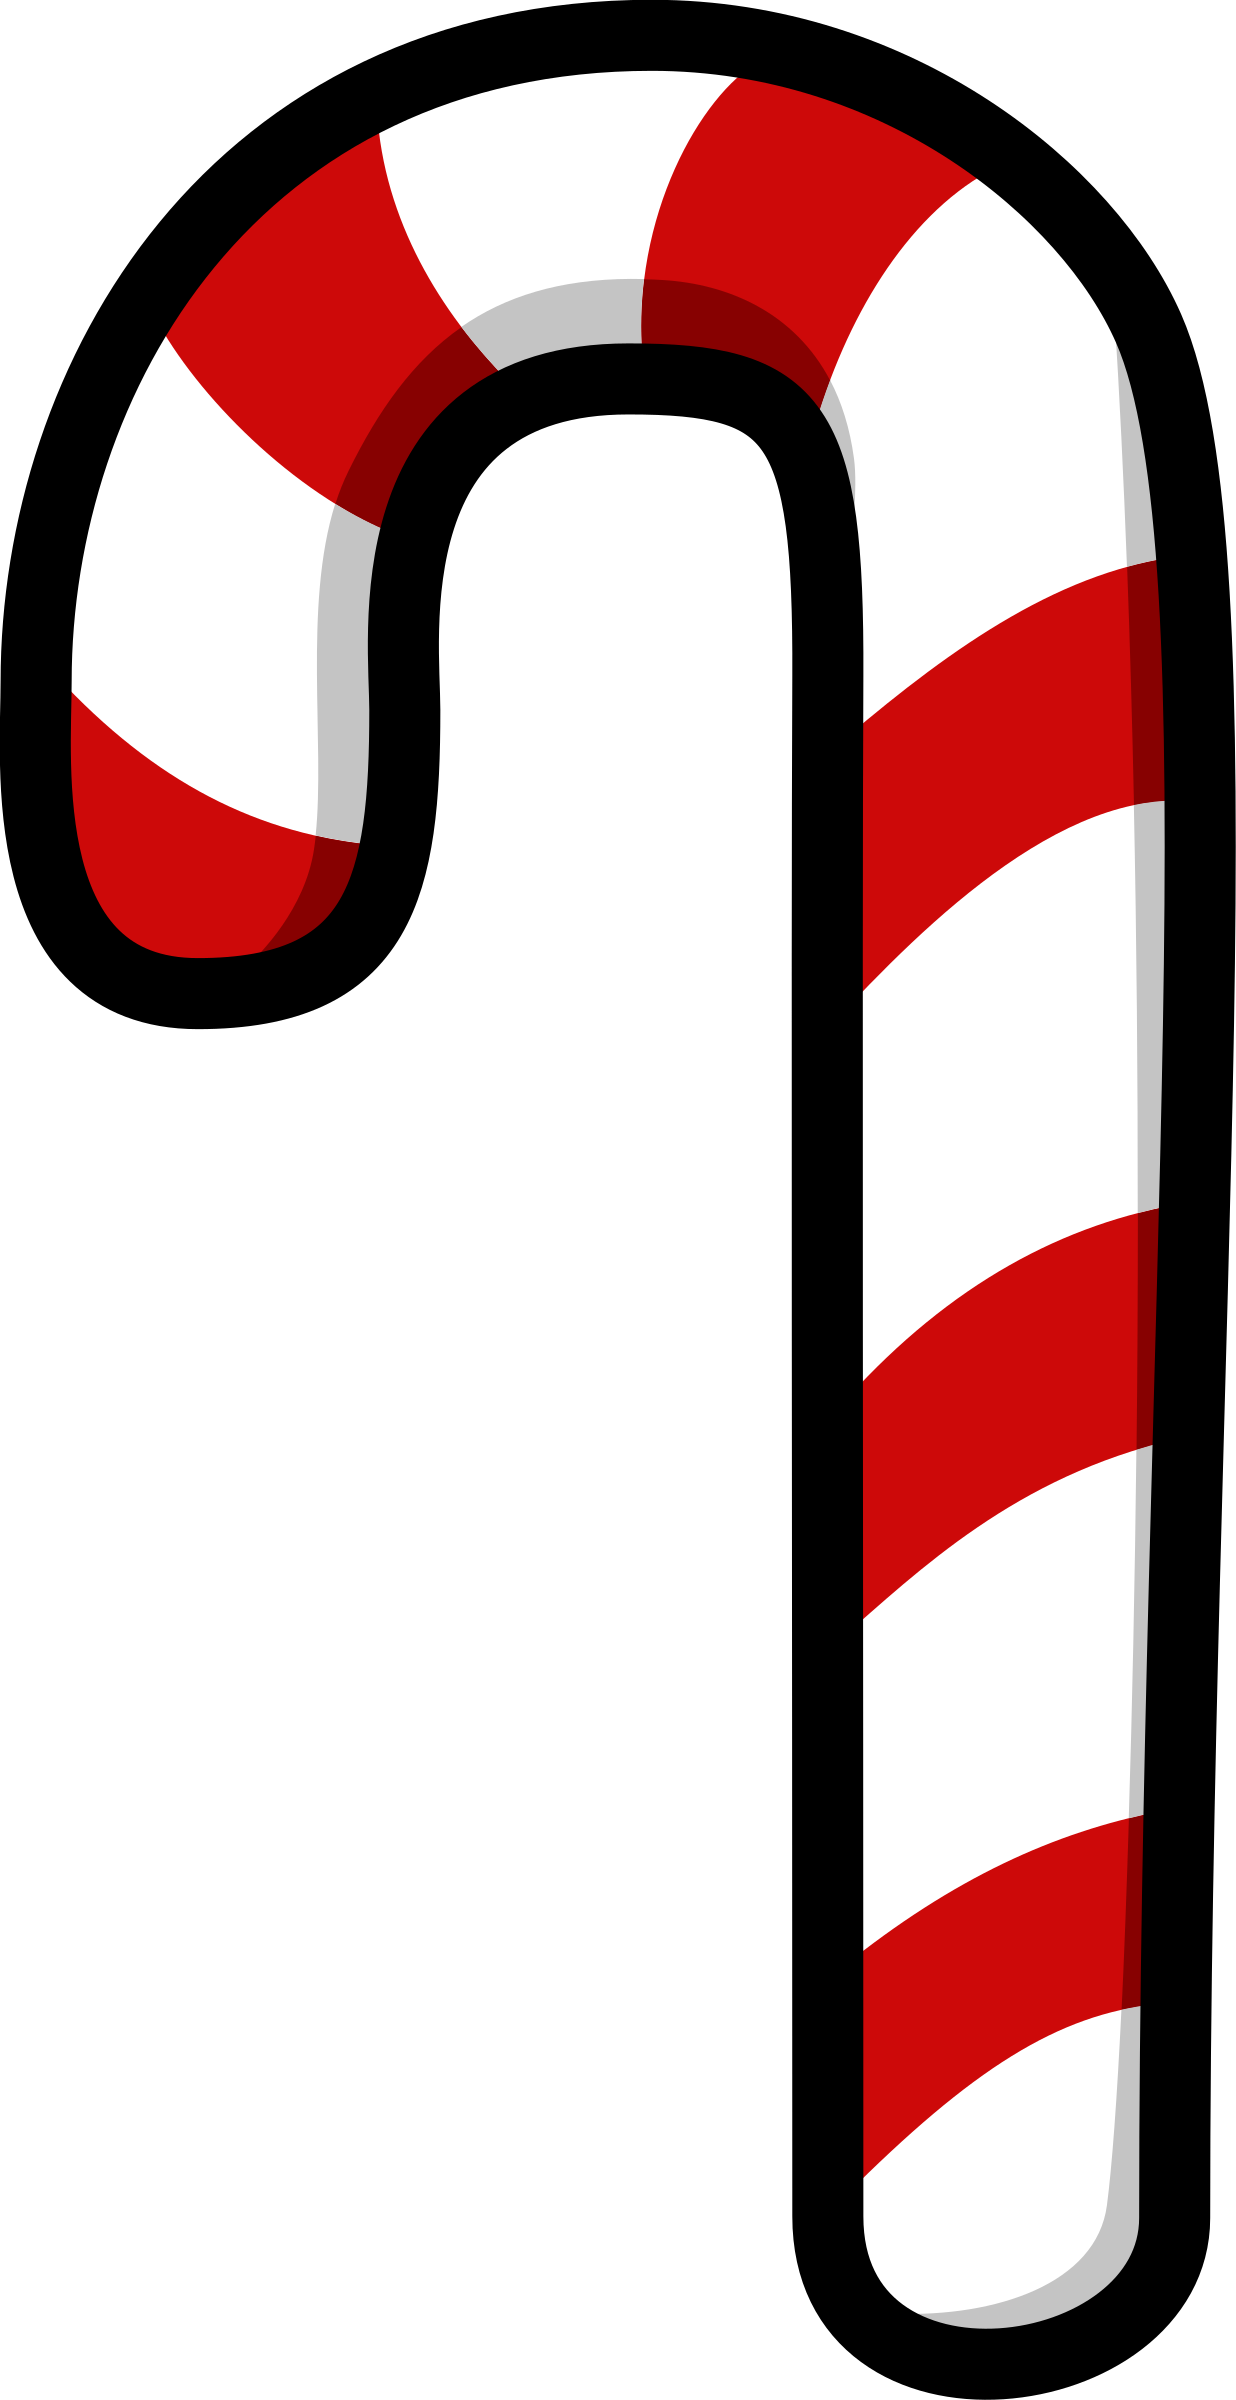 Number clipart candy cane Cane Candy Clipart Candy Cane